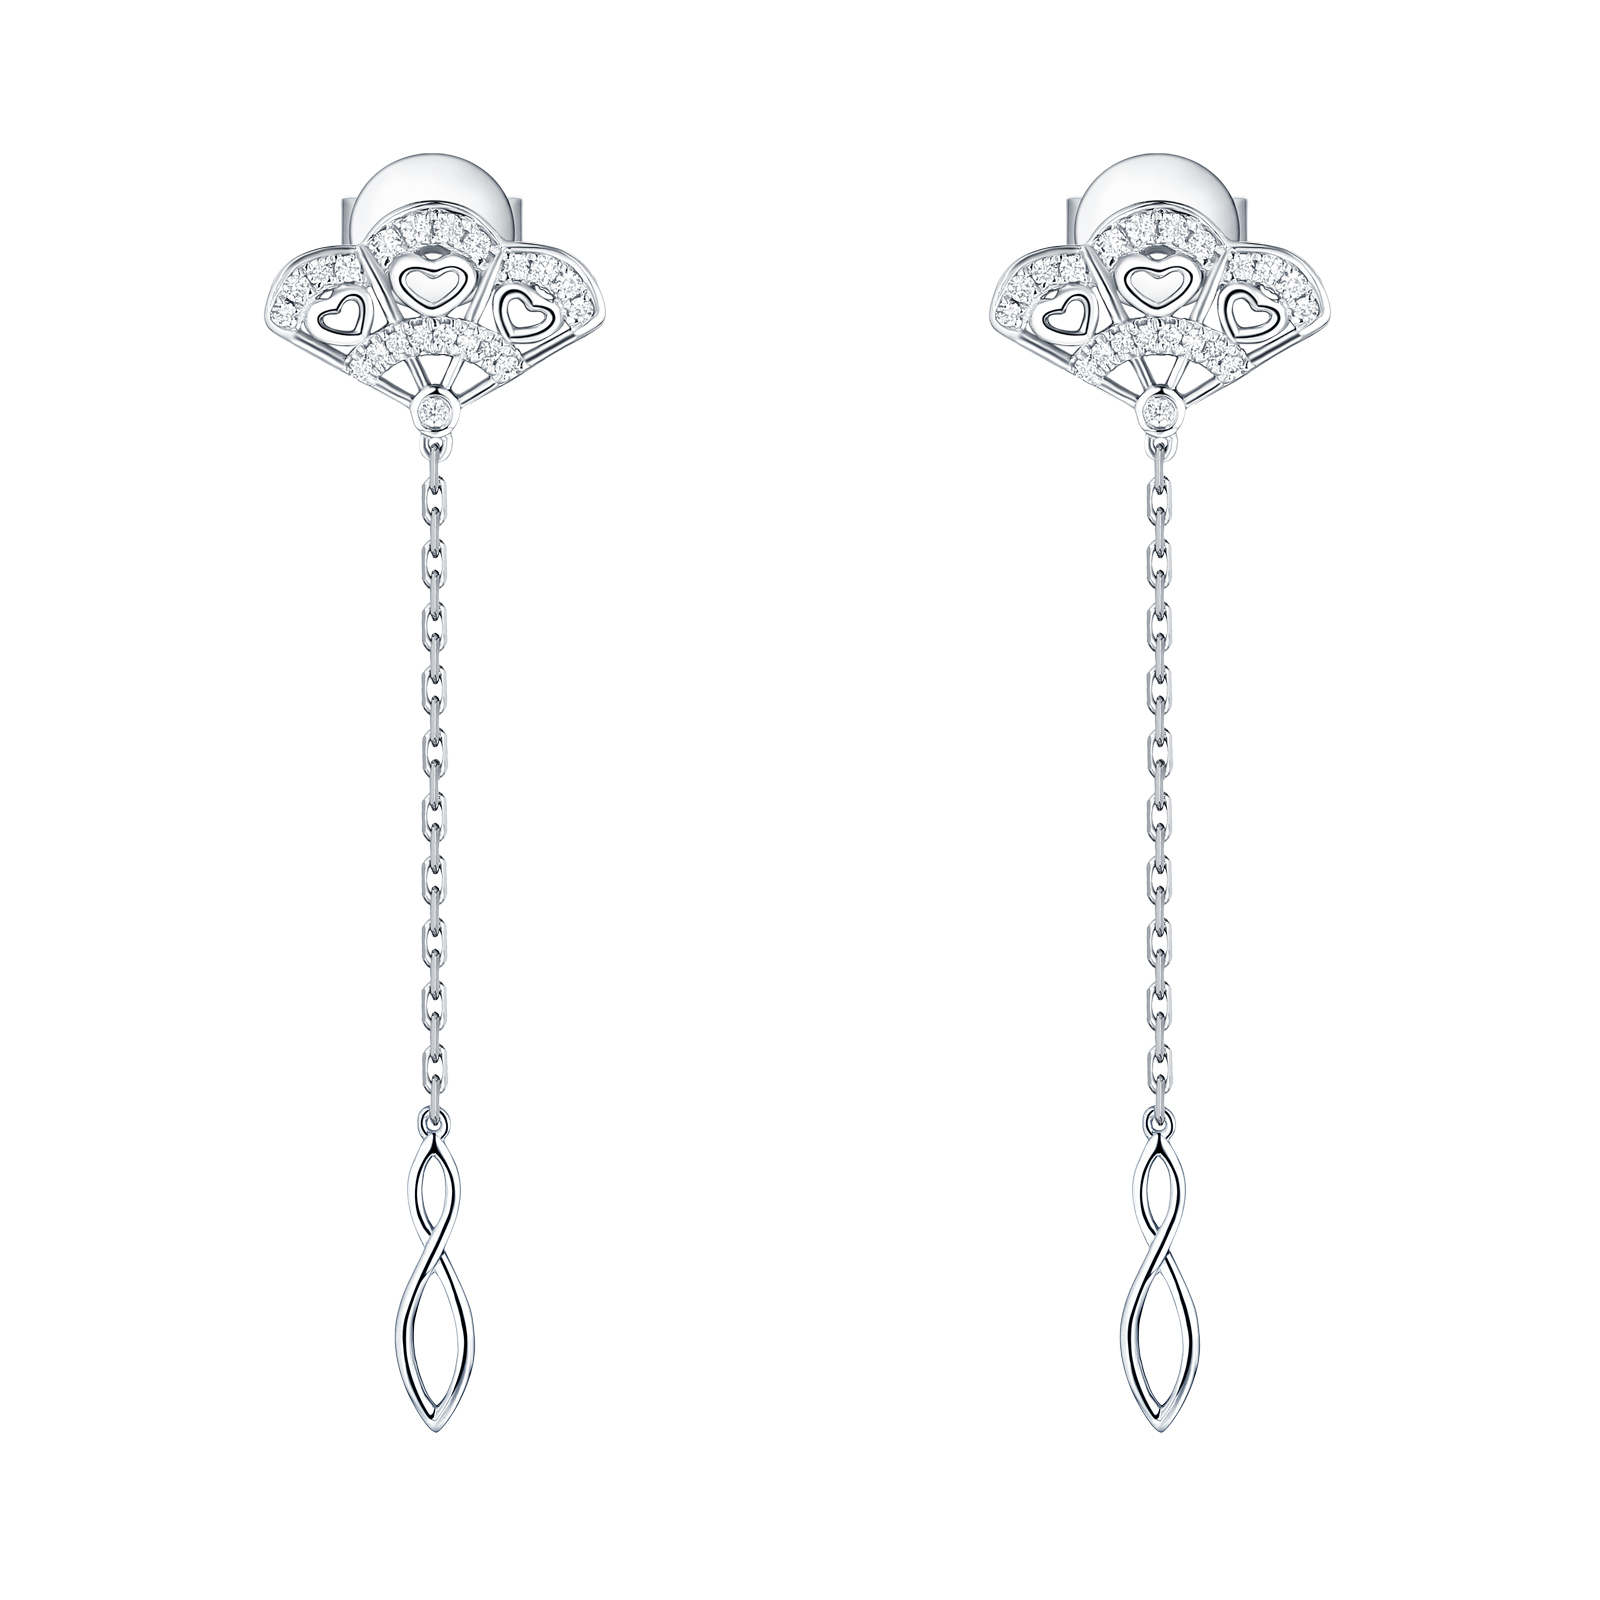 E29926WHT- 14K White Gold Diamond Earrings, 0.17 TCW